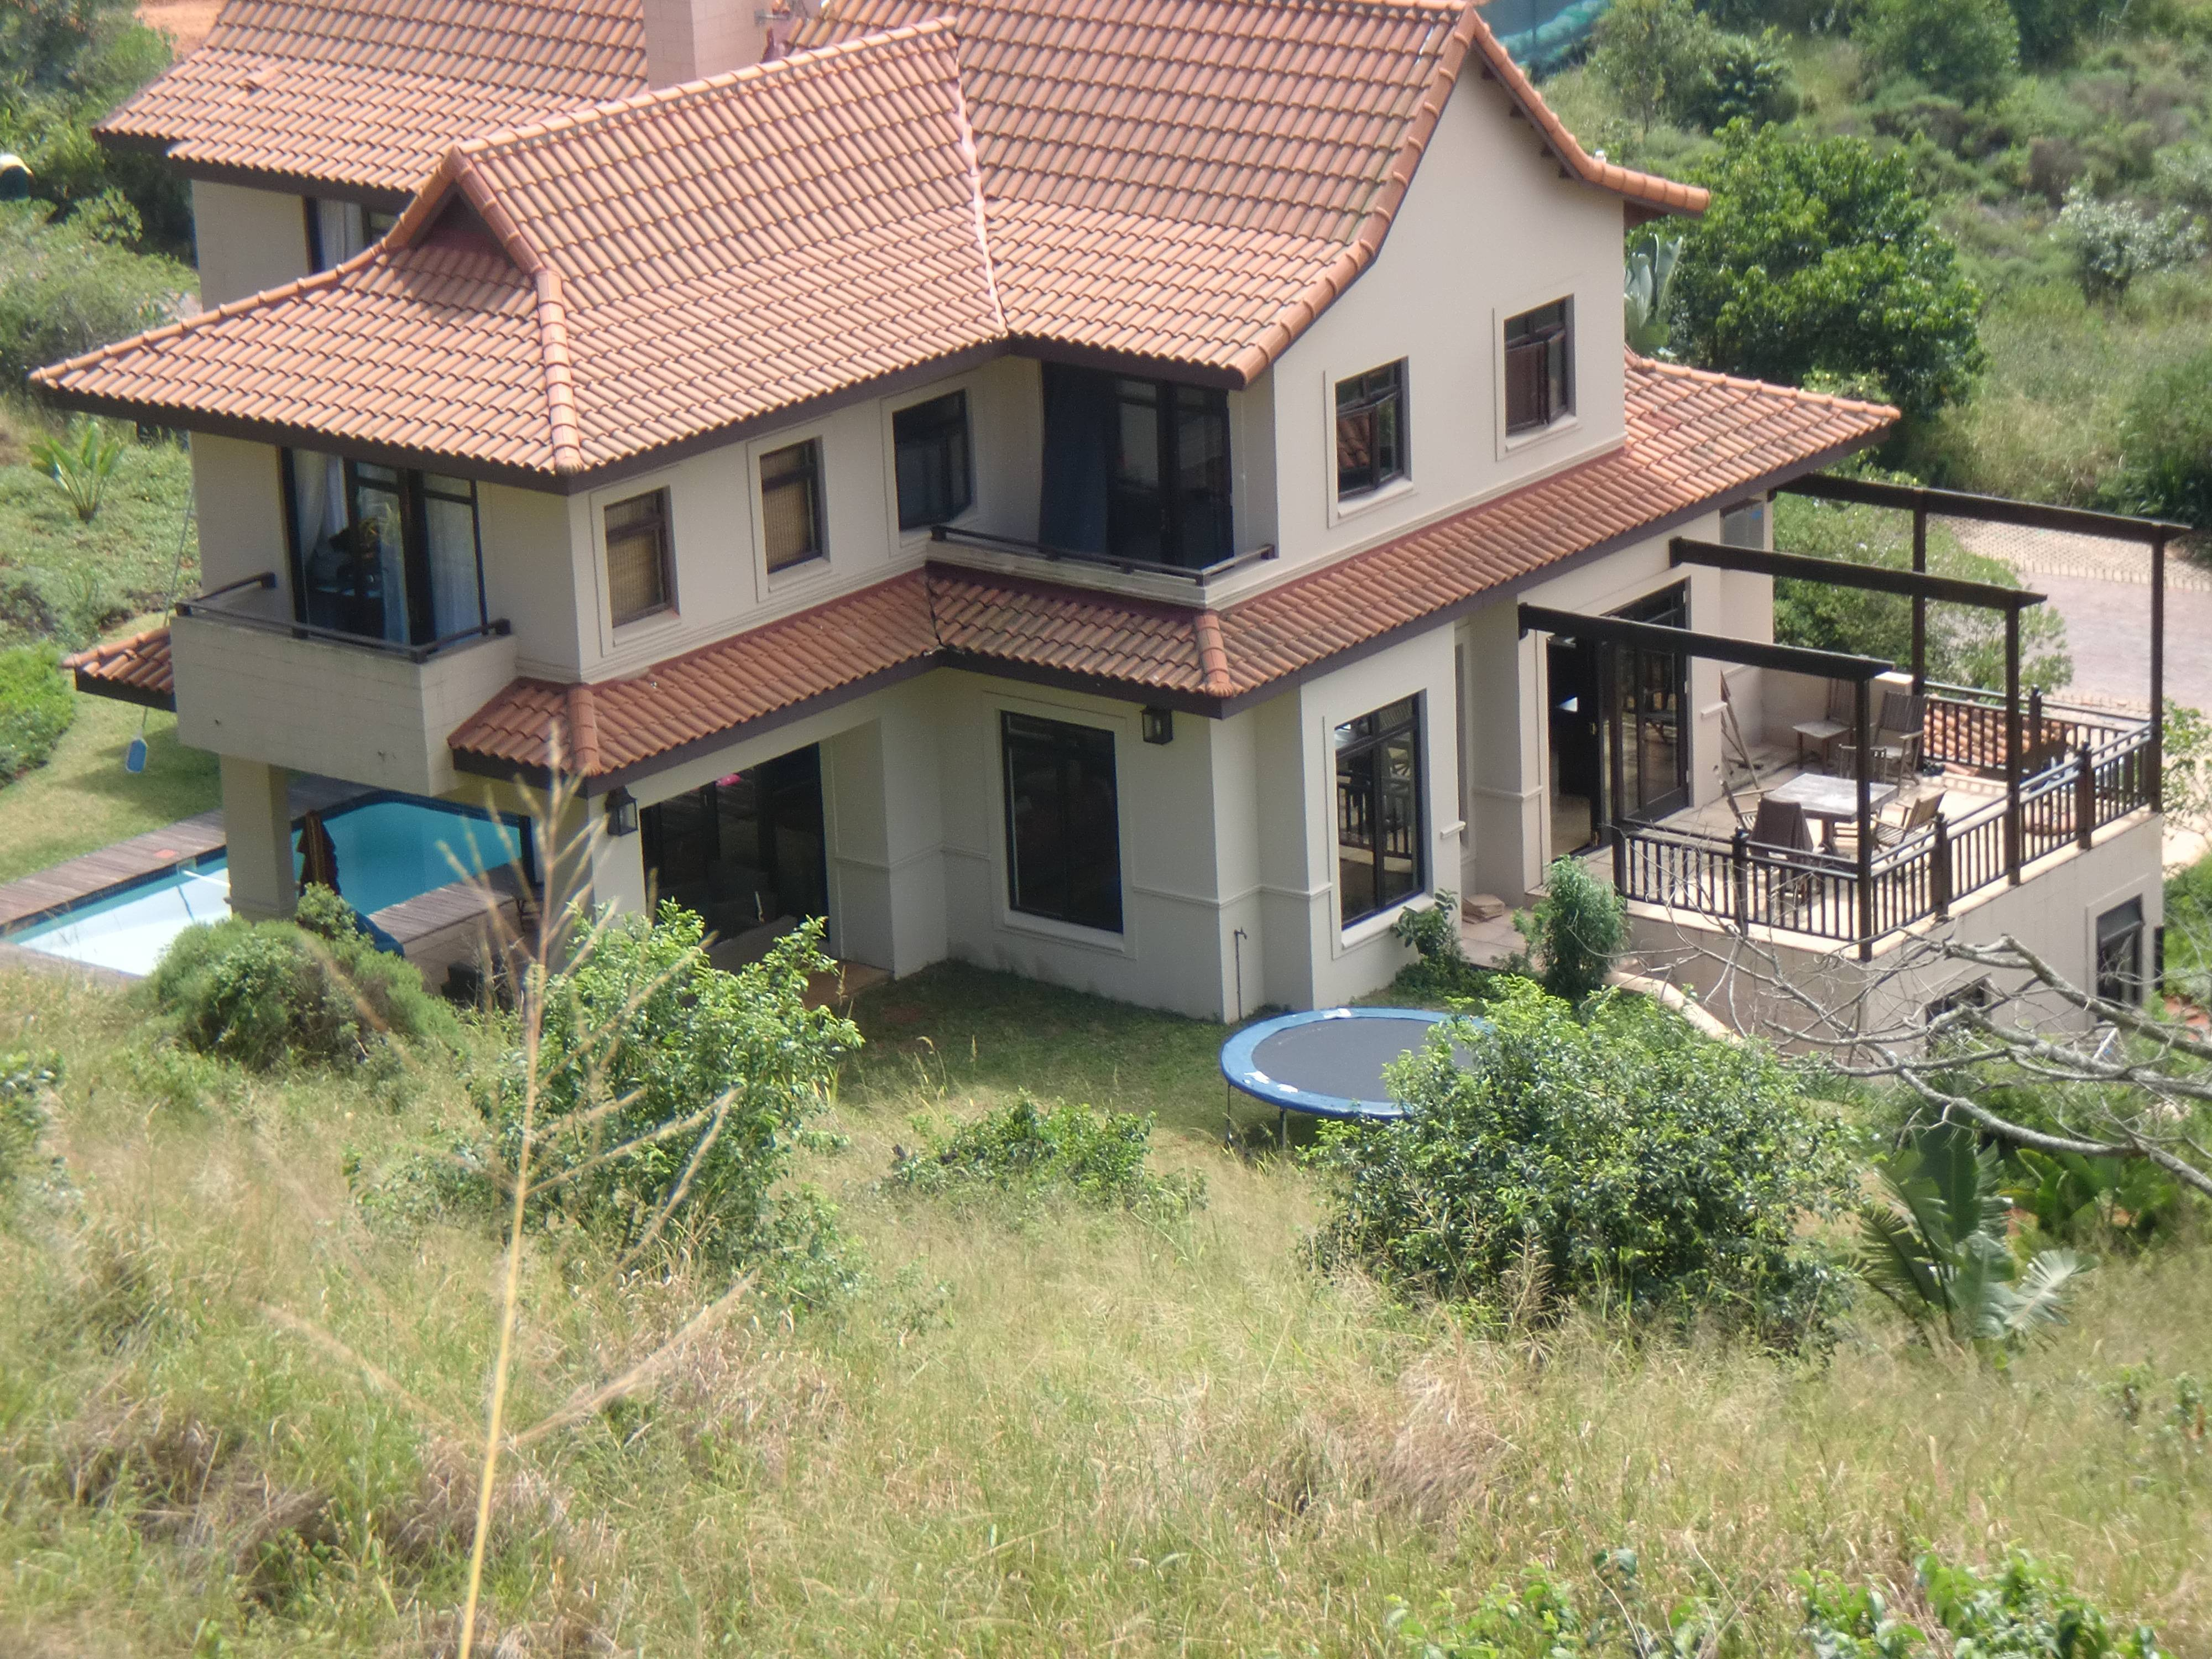 Double Storey Houses on south be, south sa, south tv,